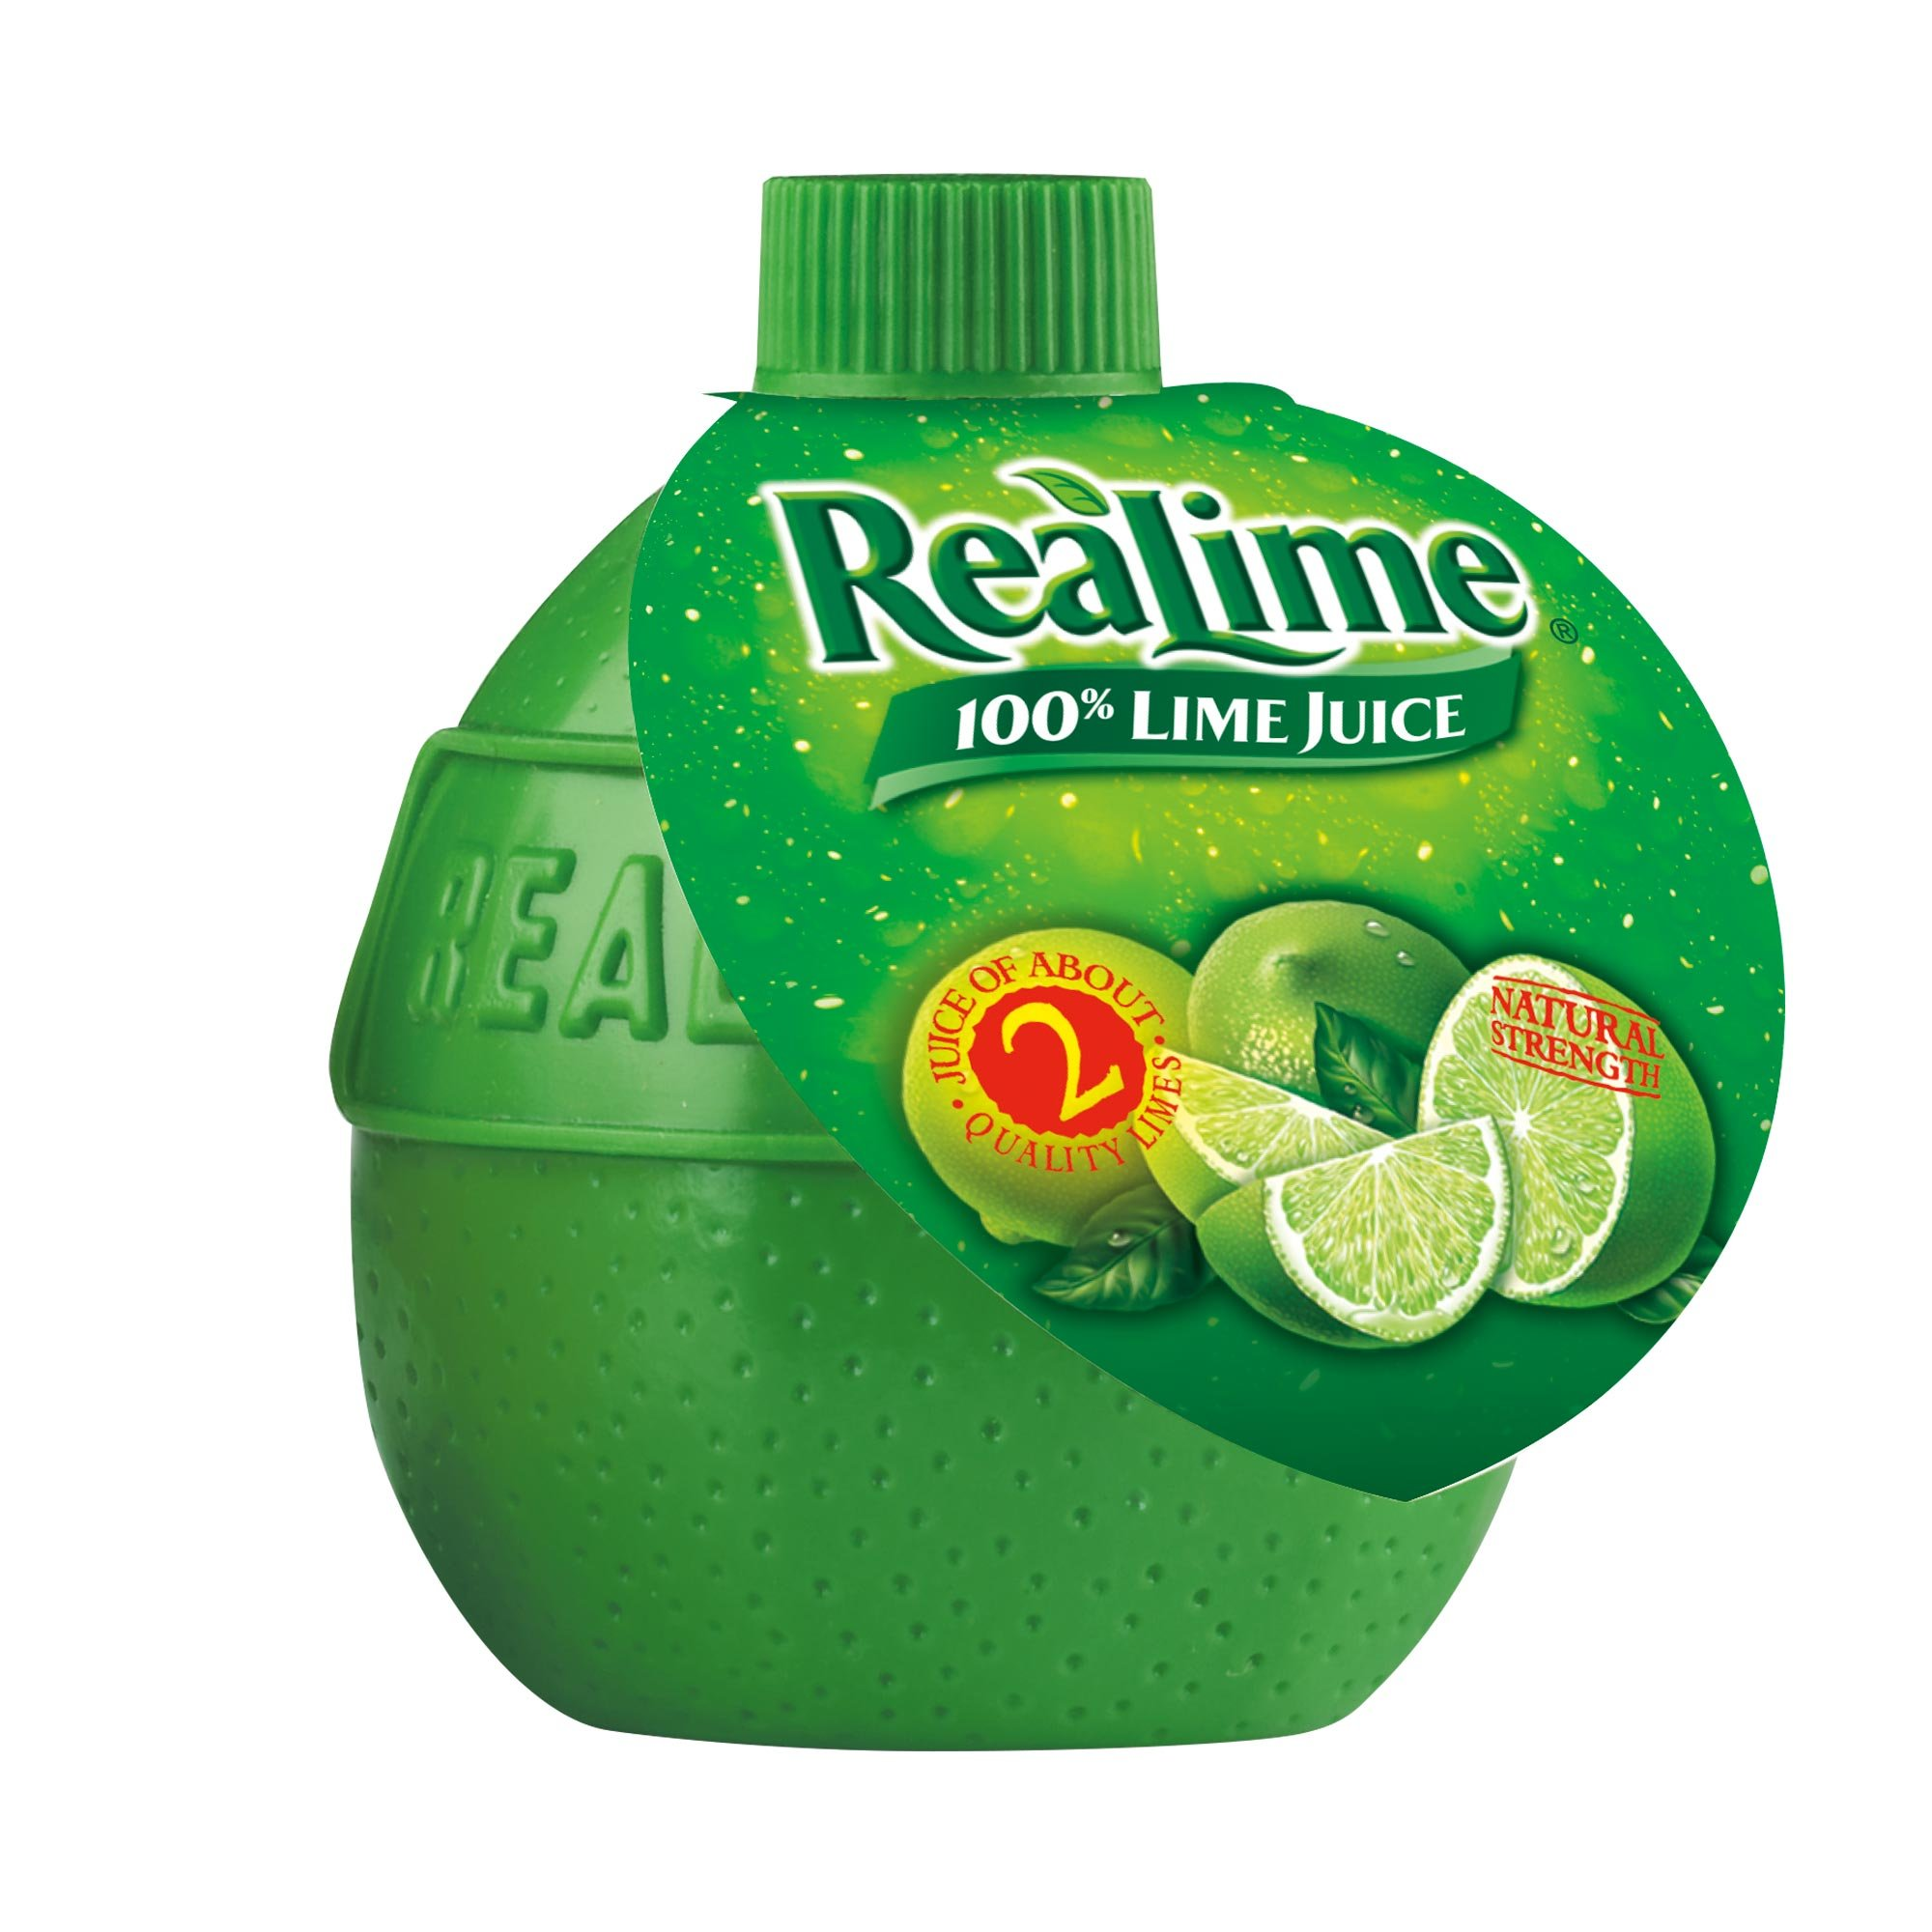 ReaLime 100% Lime Juice, 2.5 Fluid Ounce Bottle (Pack of 24)